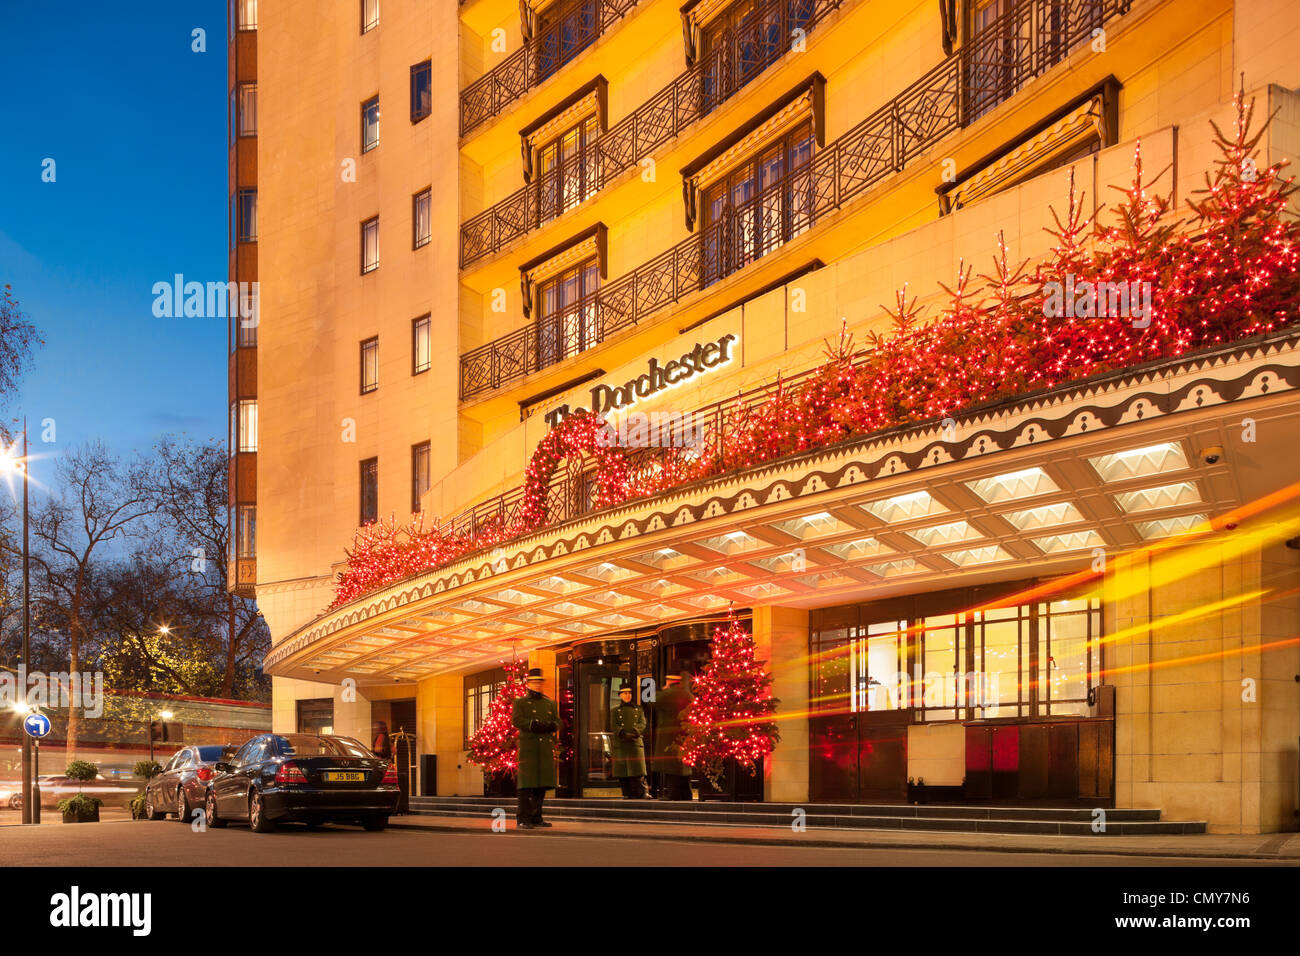 The Dorchester Hotel Park Lane London with Christmas decorations at dusk. Five star luxury hotel, entrance, doorman - Stock Image